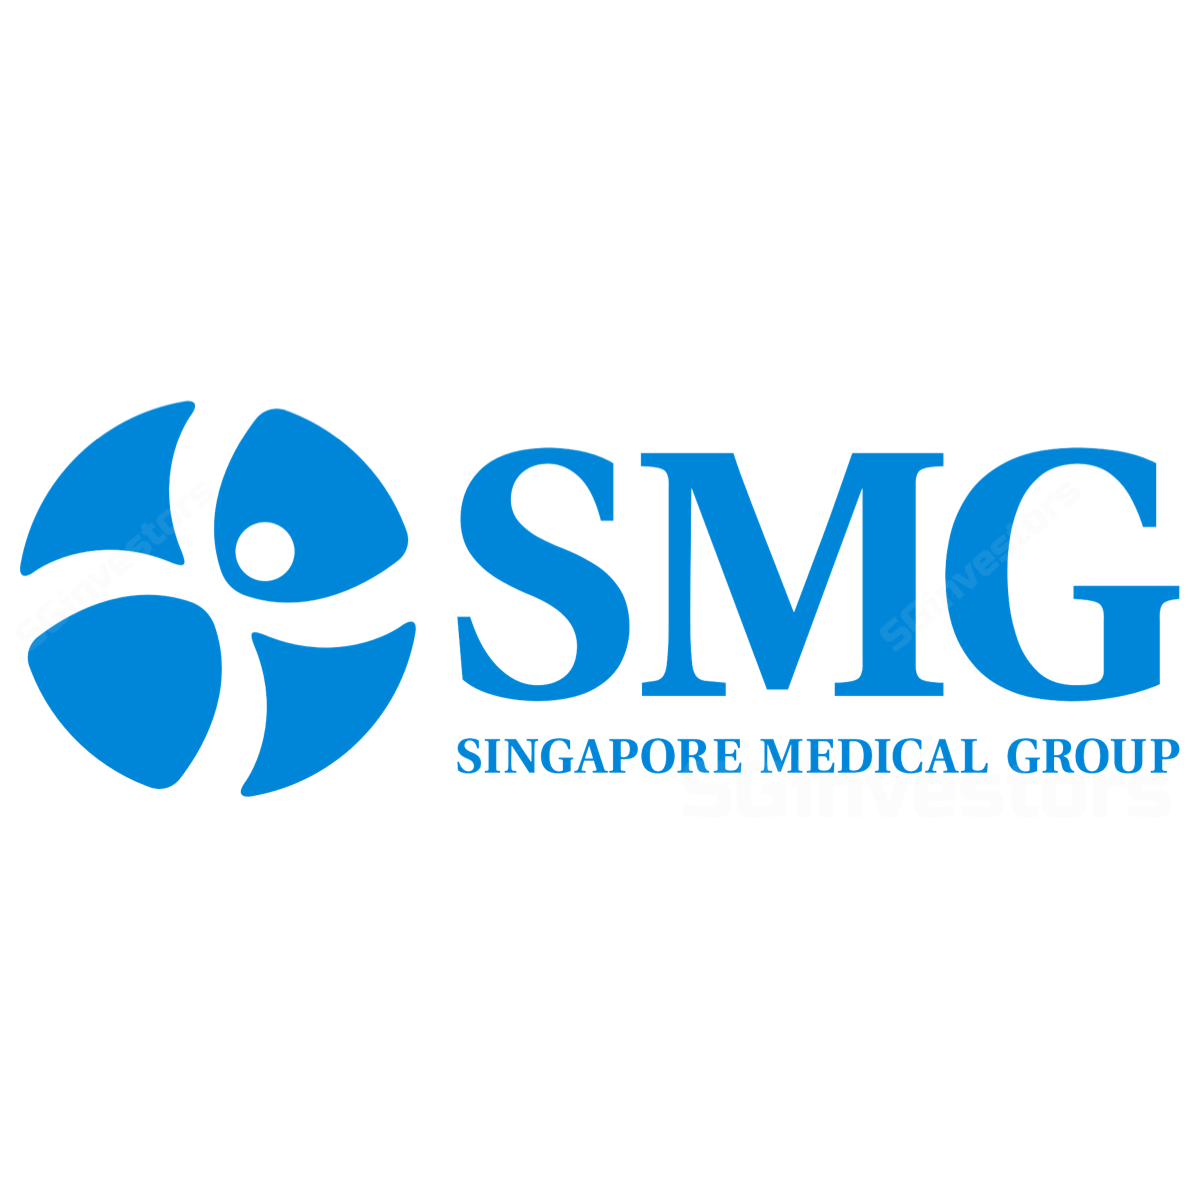 Singapore Medical Group (SMG SP) - Maybank Kim Eng 2017-11-29: Gaining Market Share And Growing Overseas